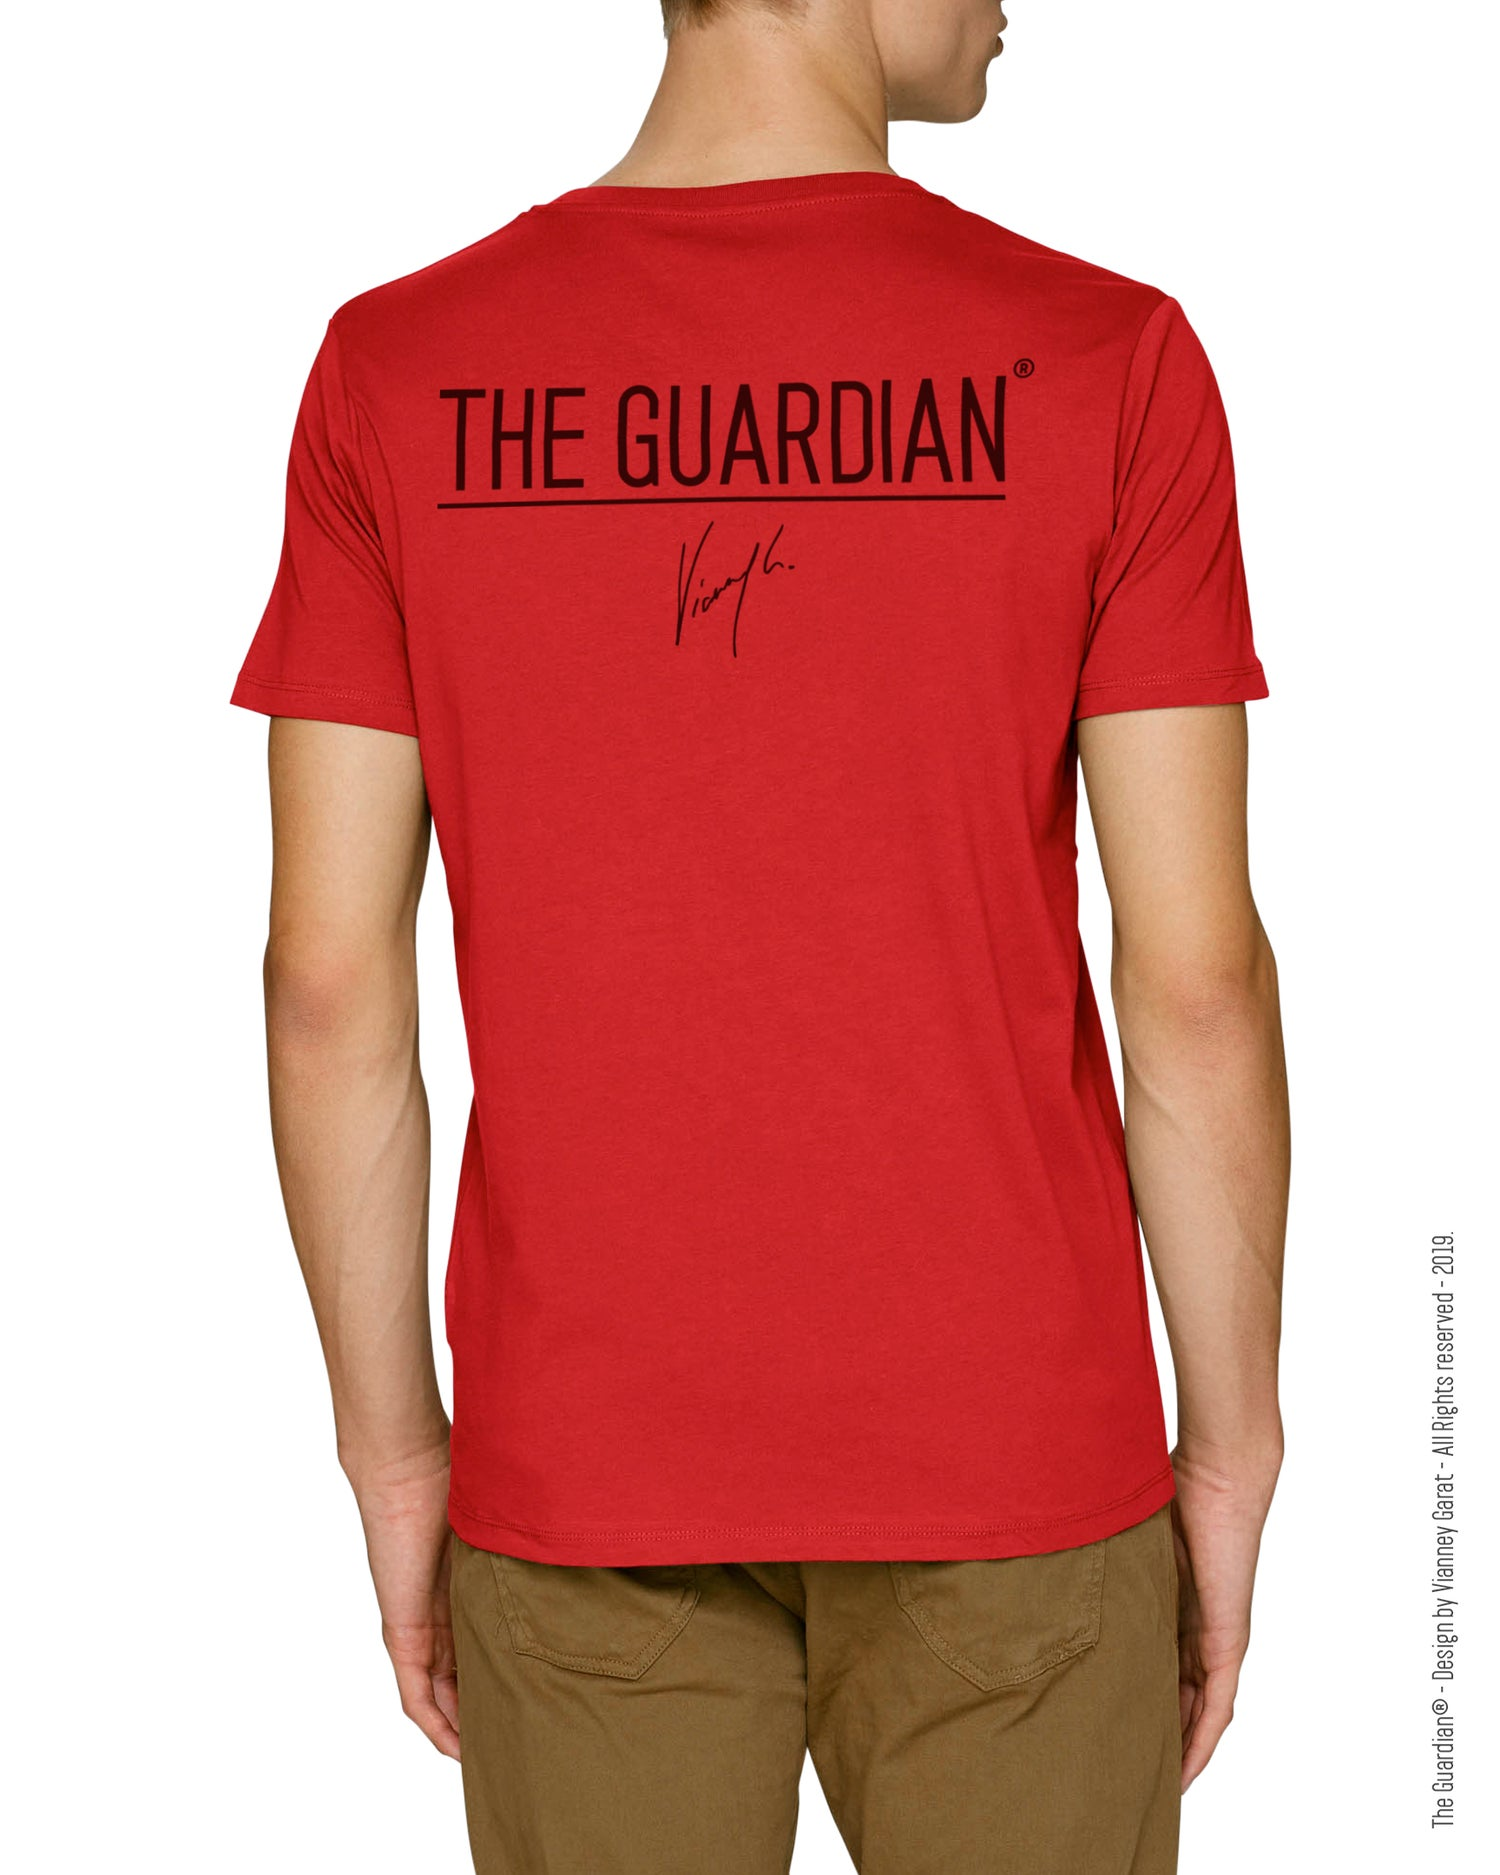 Image of T-SHIRT THE GUARDIAN® - FIRE EDITION - Limited Edition